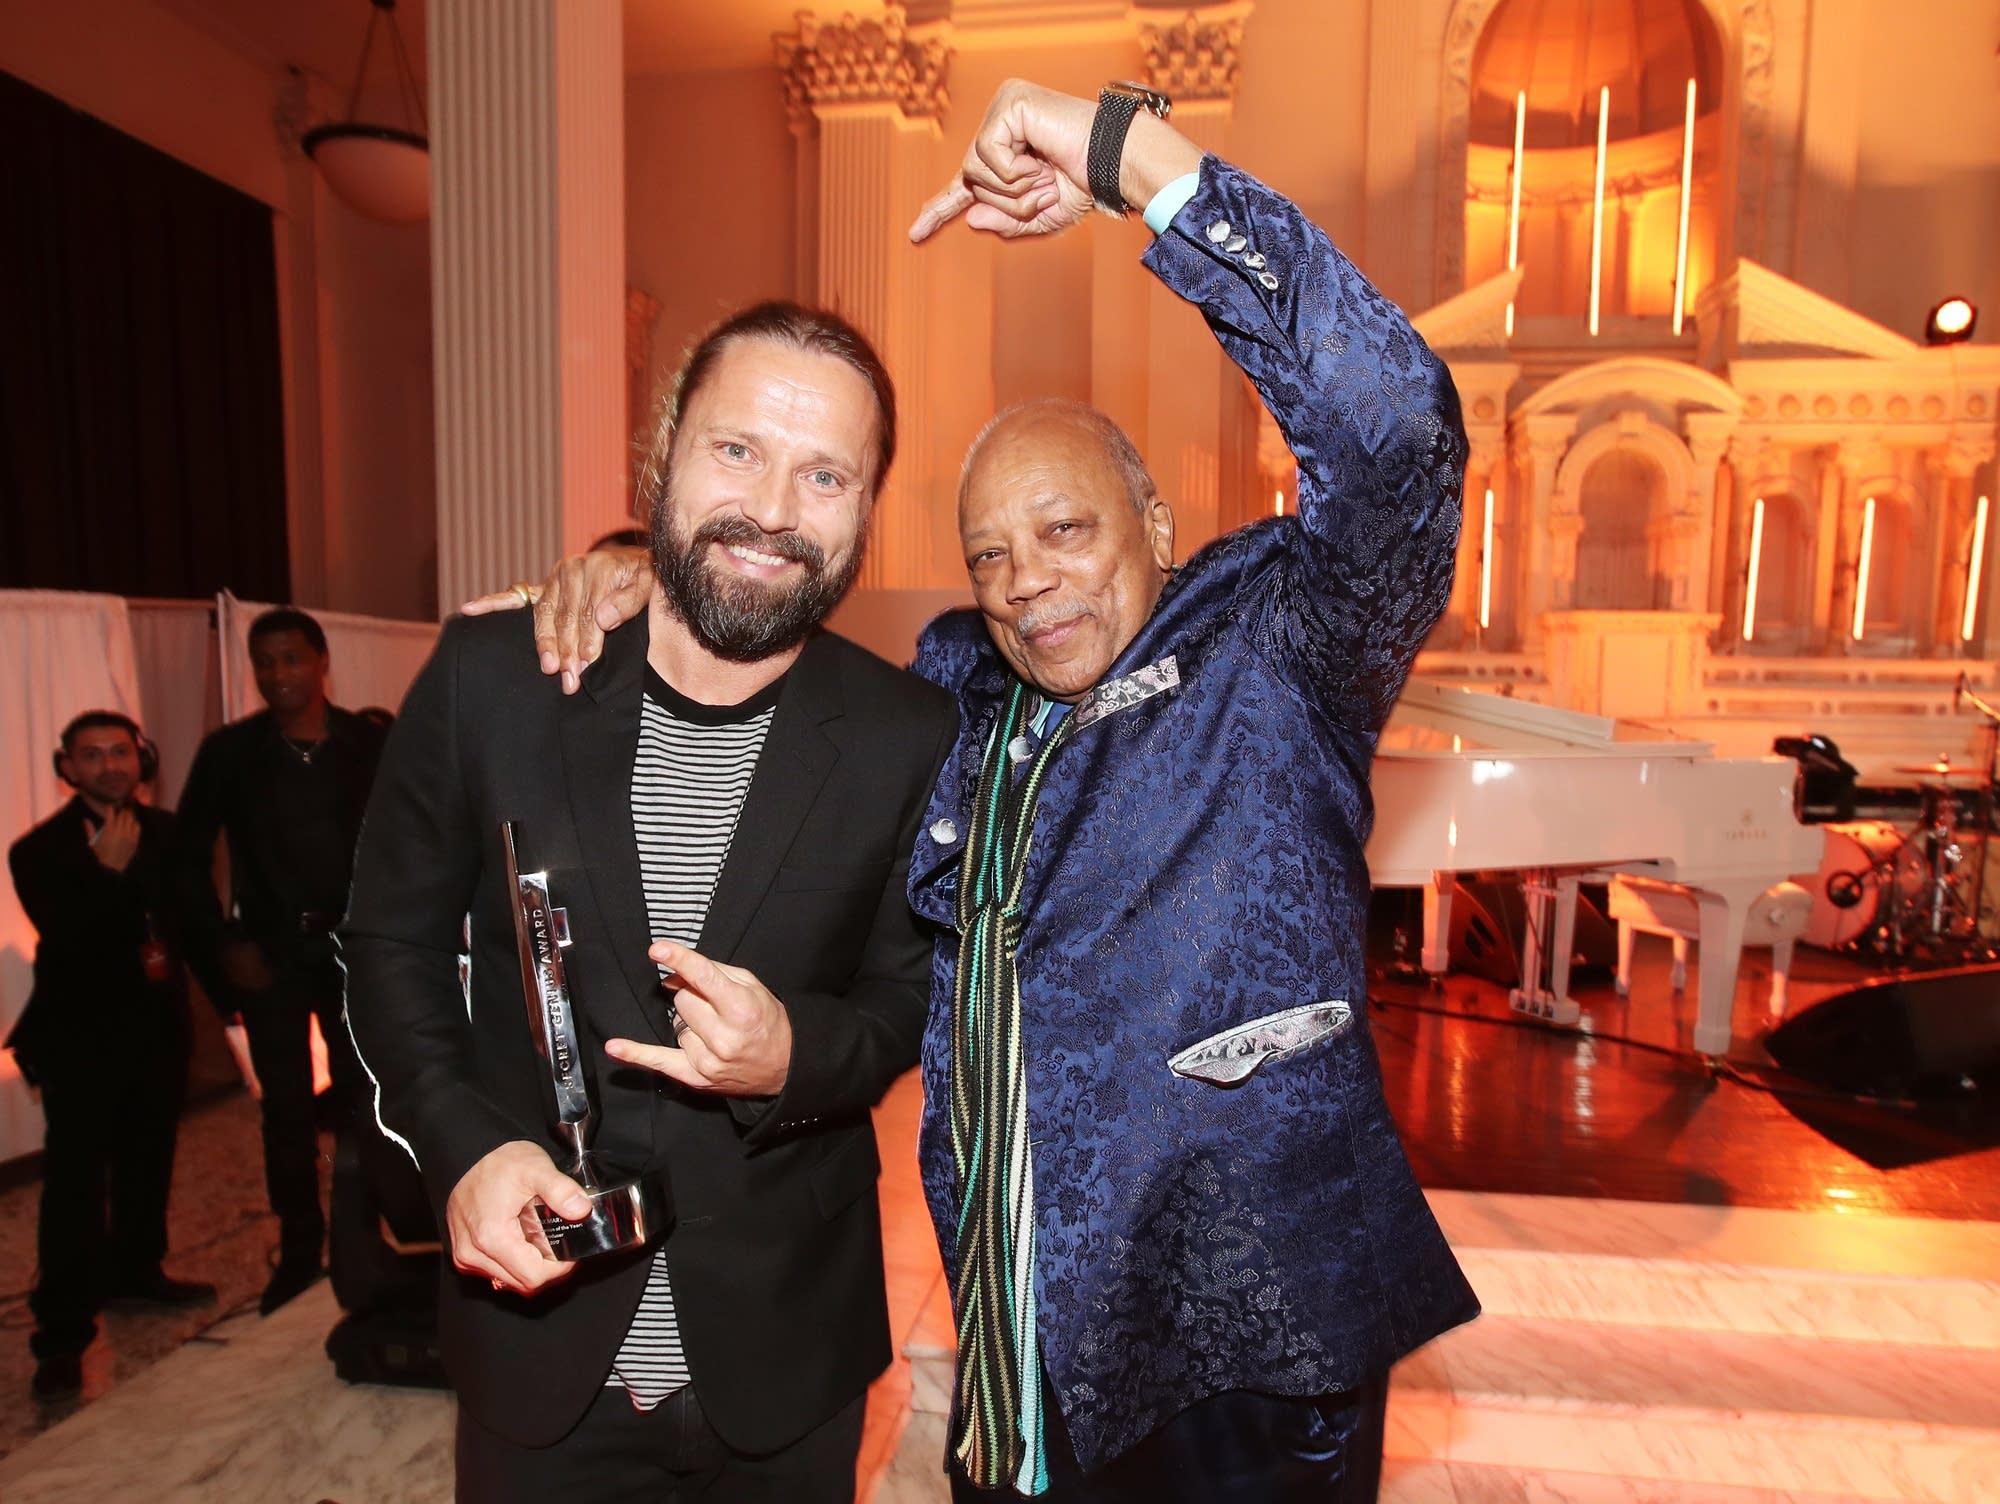 Quincy Jones gives props to Max Martin.